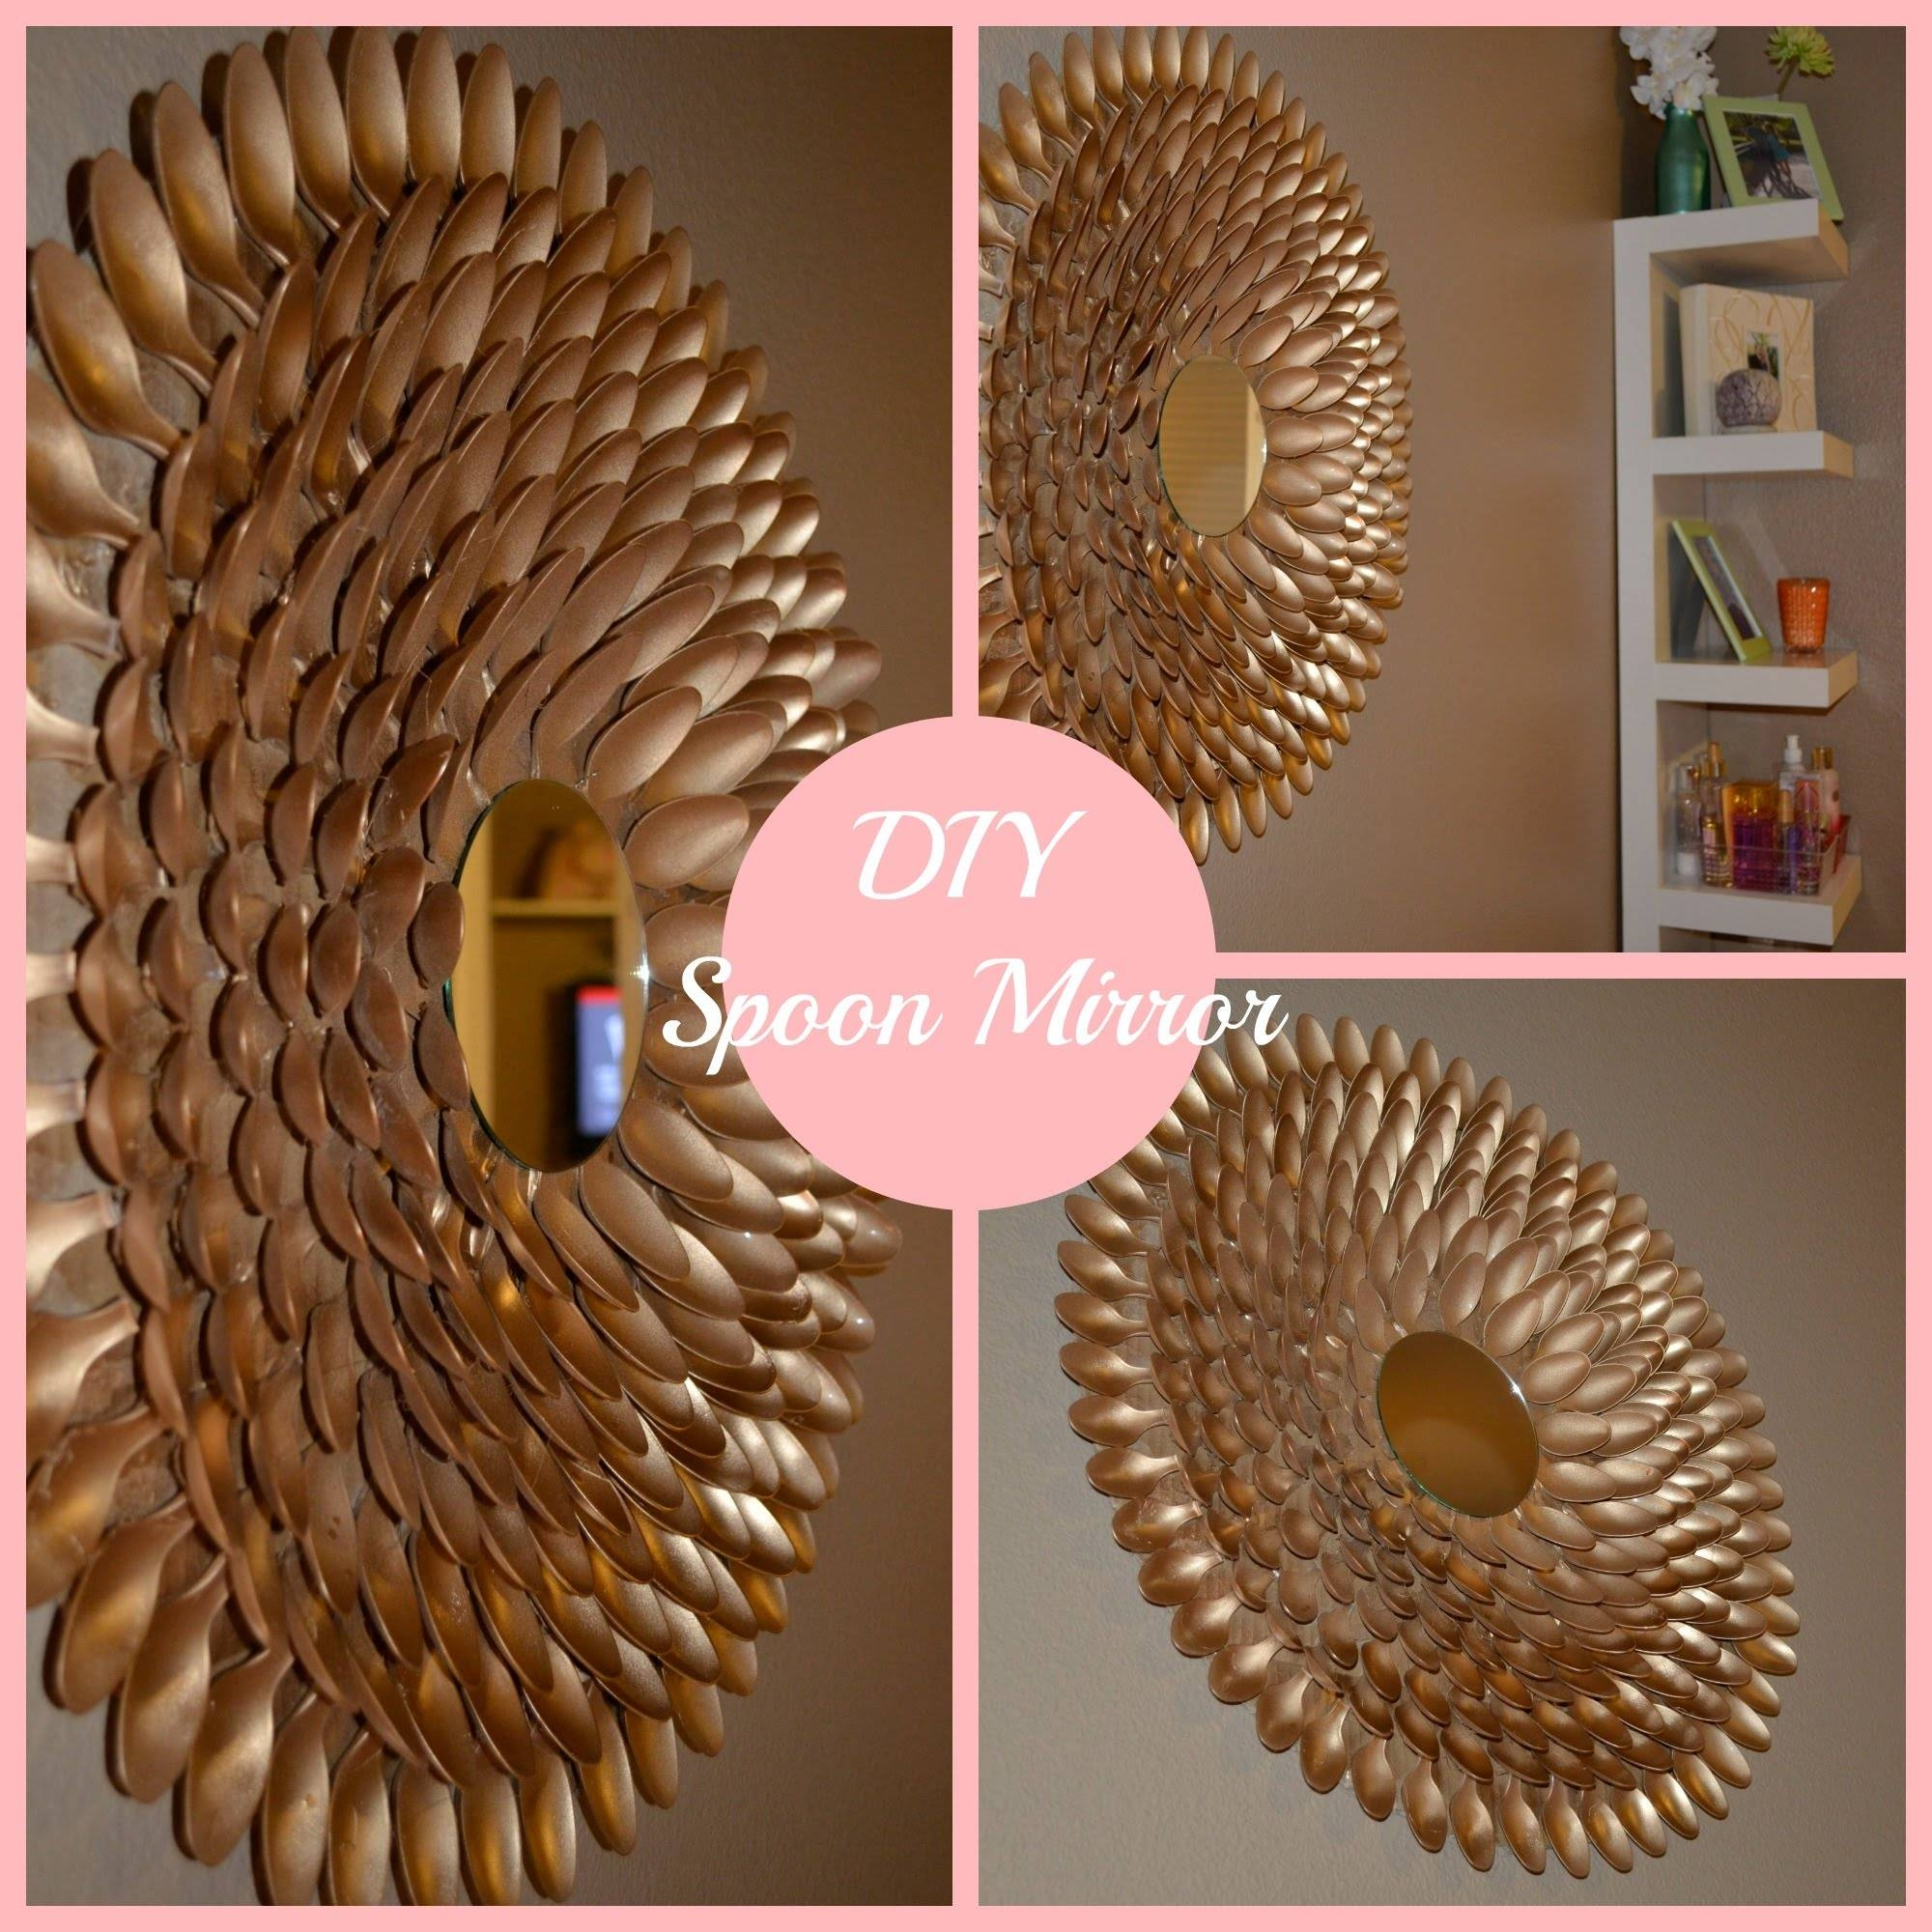 Diy Spoon Mirror Wall Decor – Youtube Pertaining To Most Current Diy Mirror Wall Art (View 12 of 20)